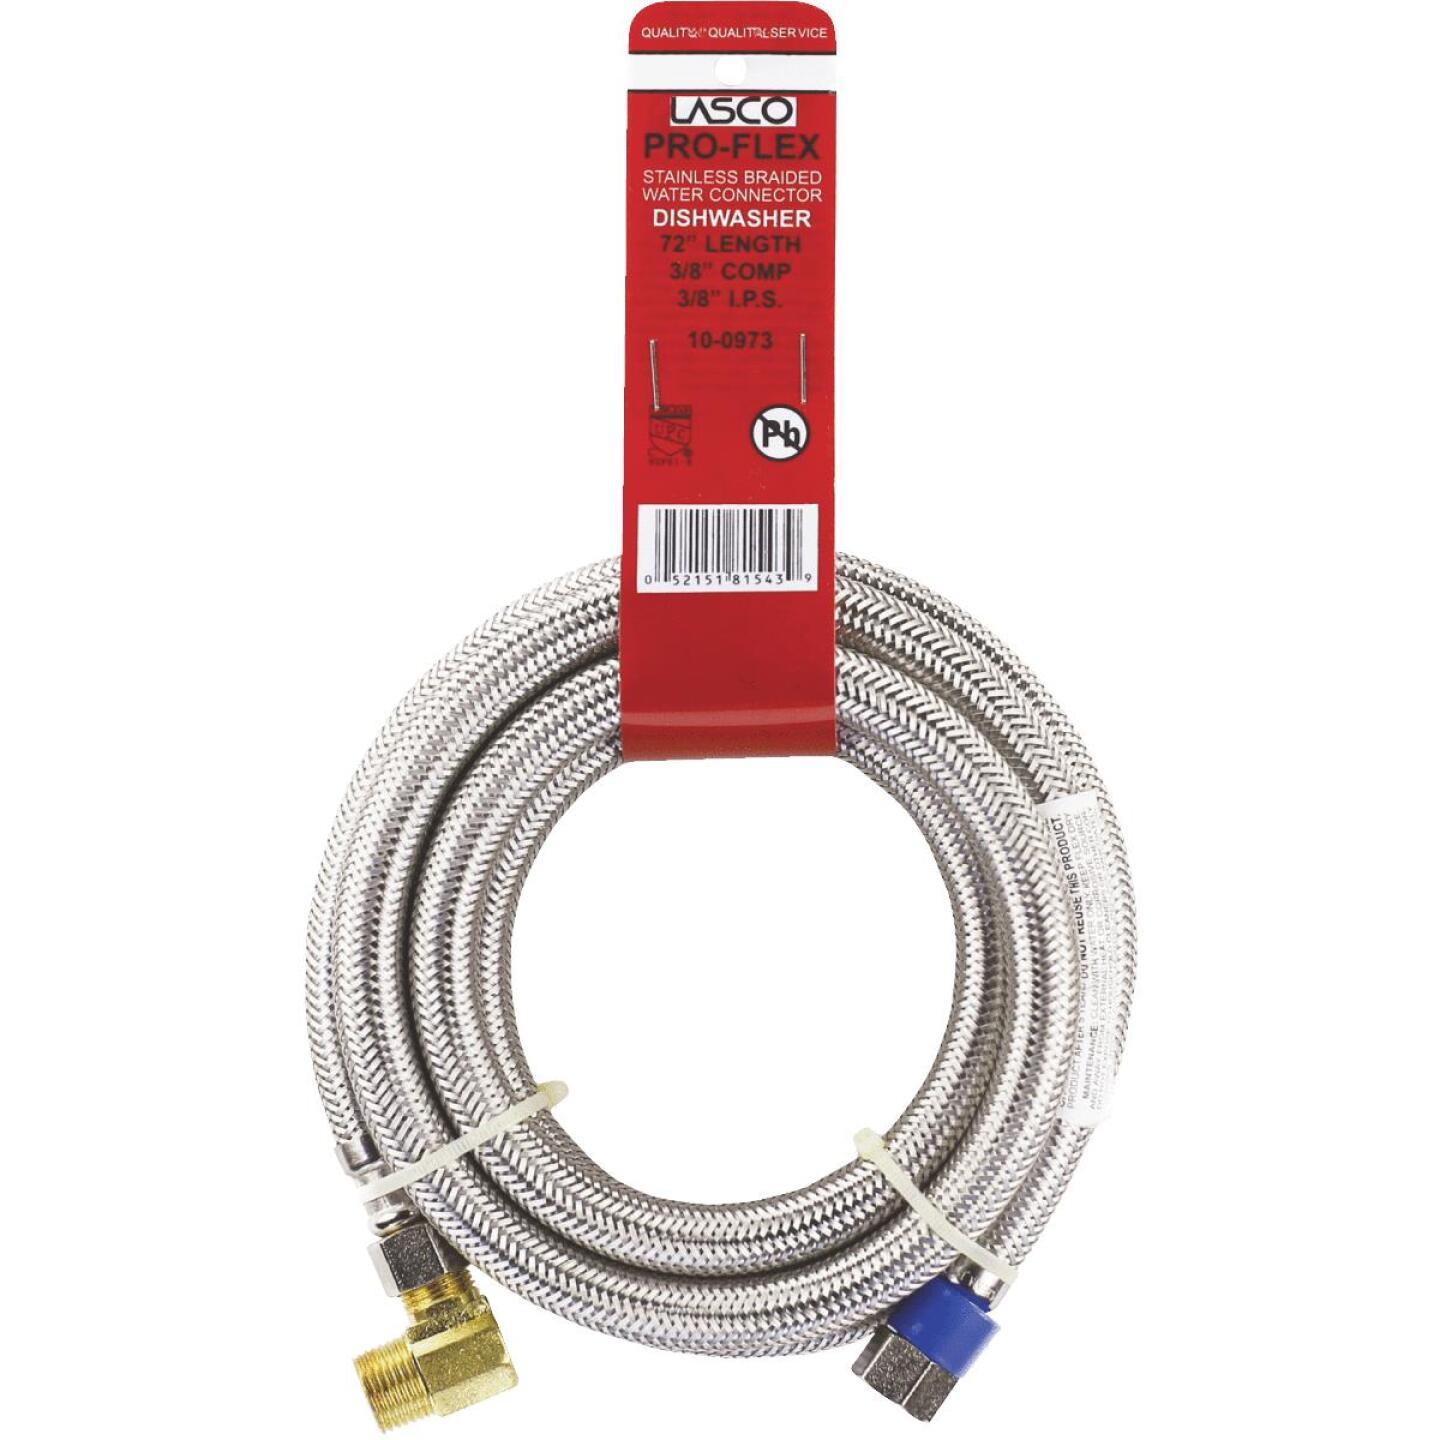 Lasco 3/8 In.C x 3/8 In.MIP Elbow x 72 In.L Braided Stainless Steel Flex Line Appliance Water Connector Image 2